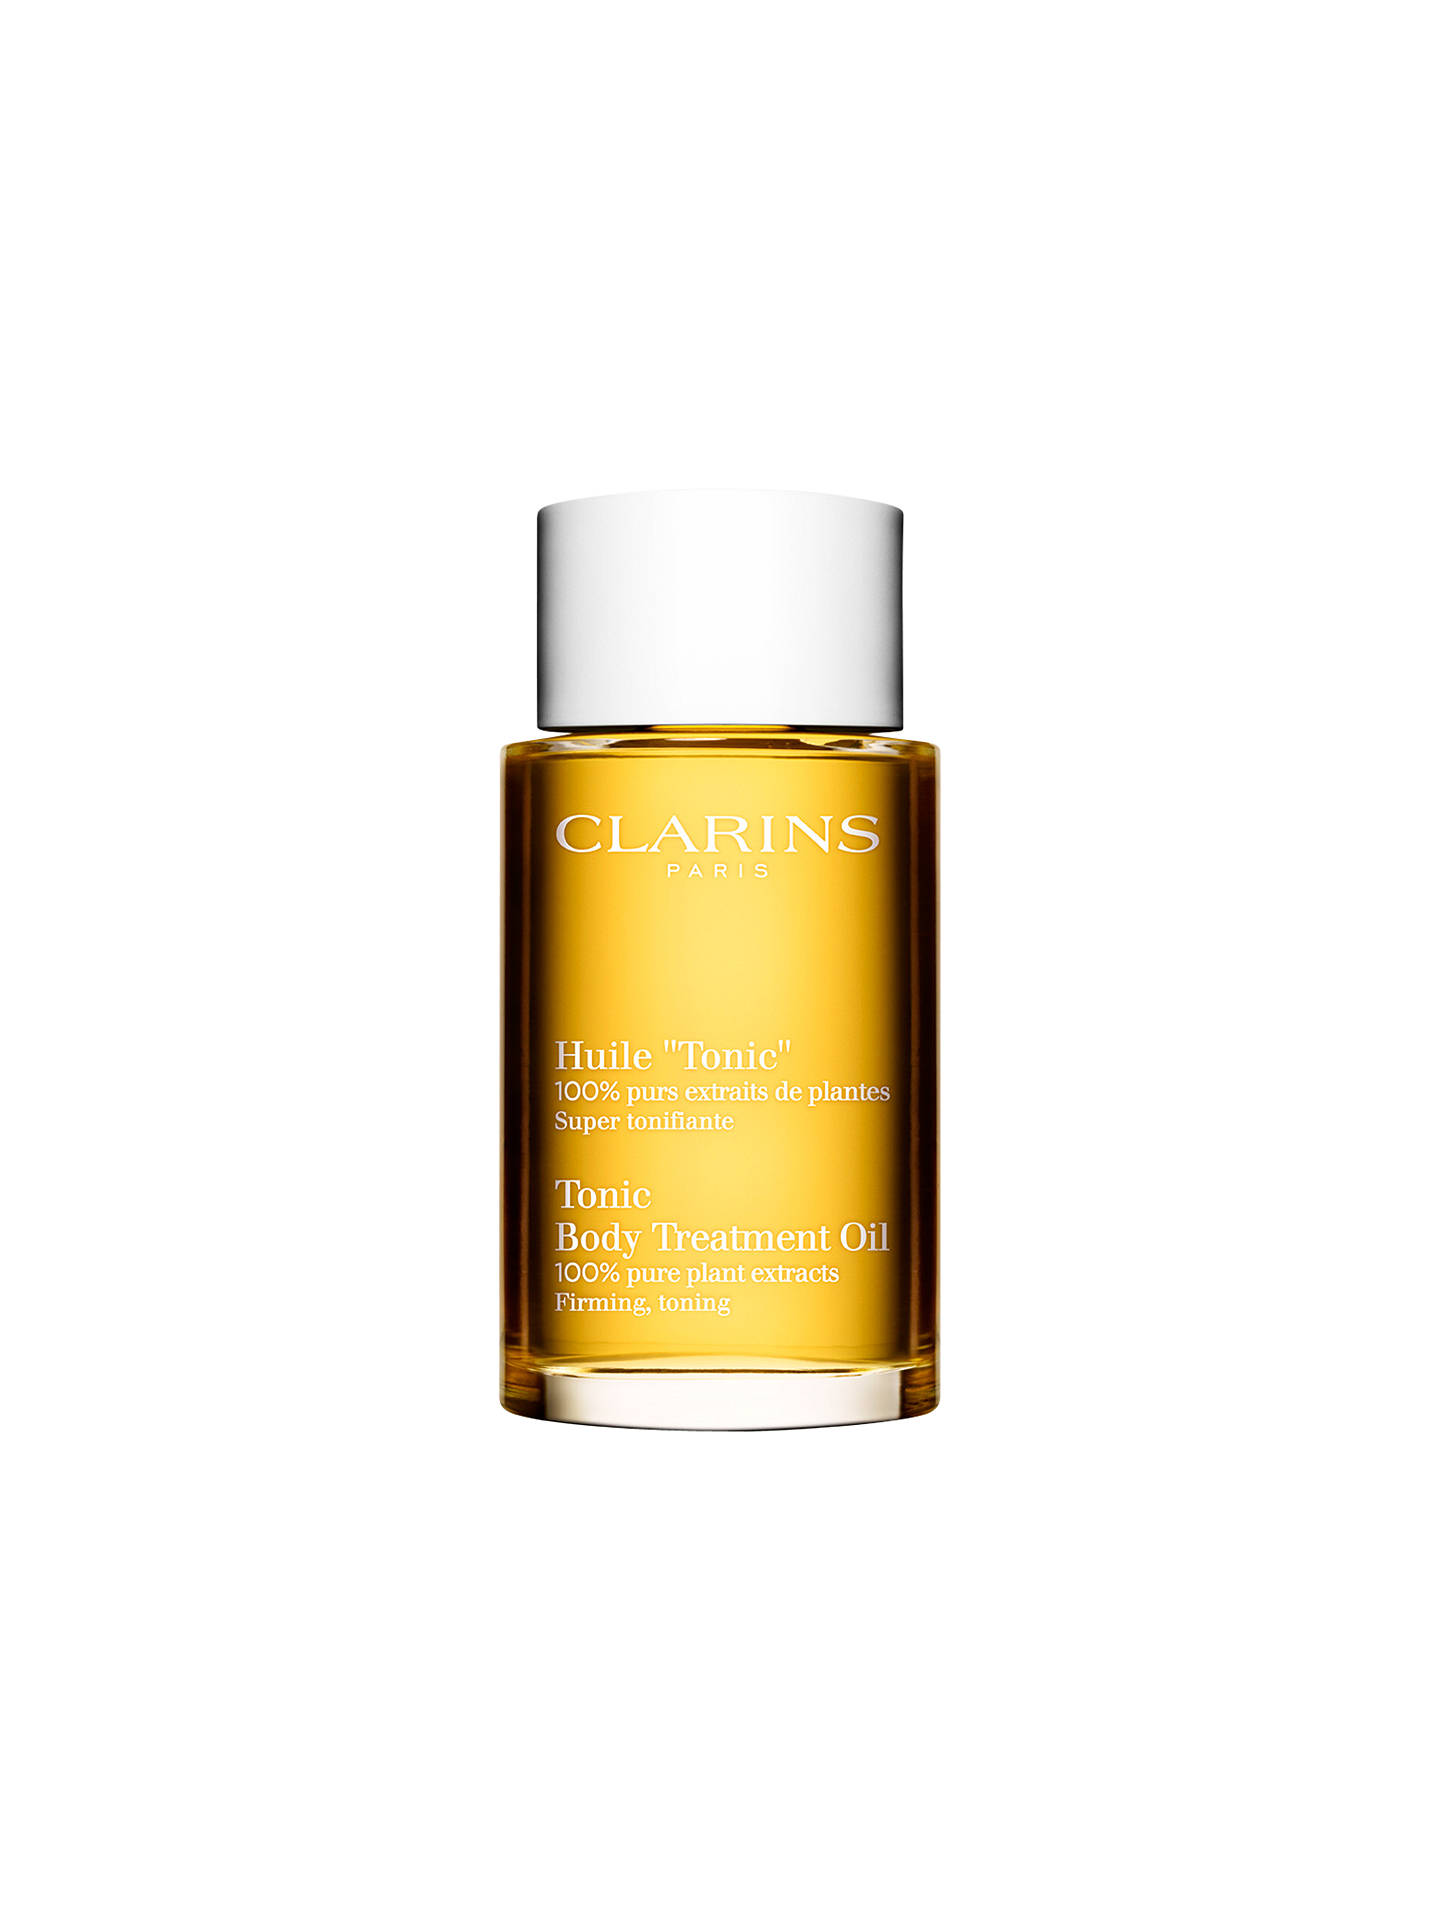 BuyClarins Tonic Body Treatment Oil - Firming/Toning, 100ml Online at johnlewis.com